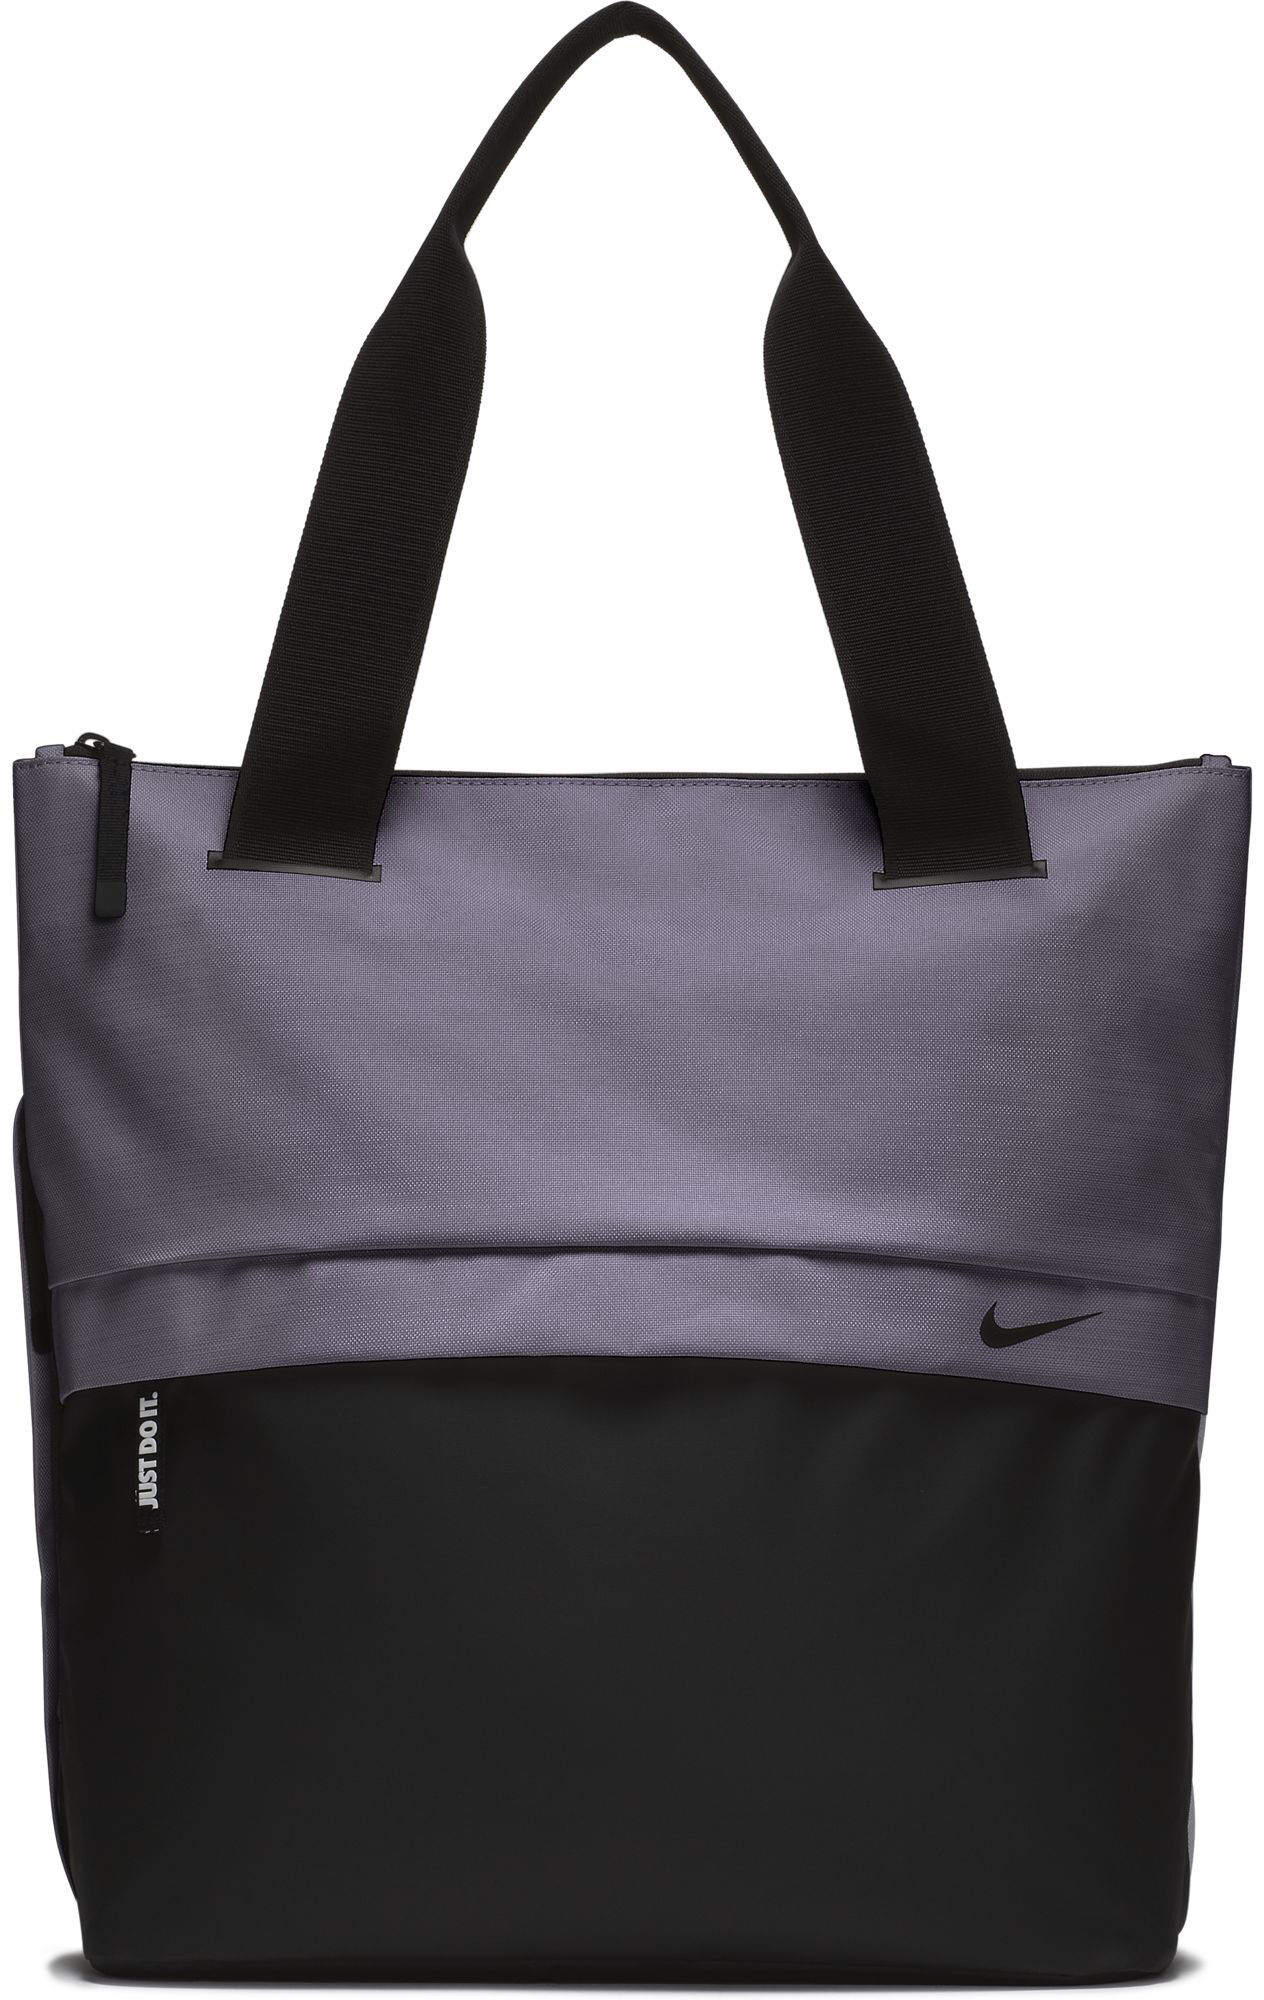 eaa71e349 Deportivos Nike Bolsos 1qcuza Fitness Intersport Mujer A dTBqwBt